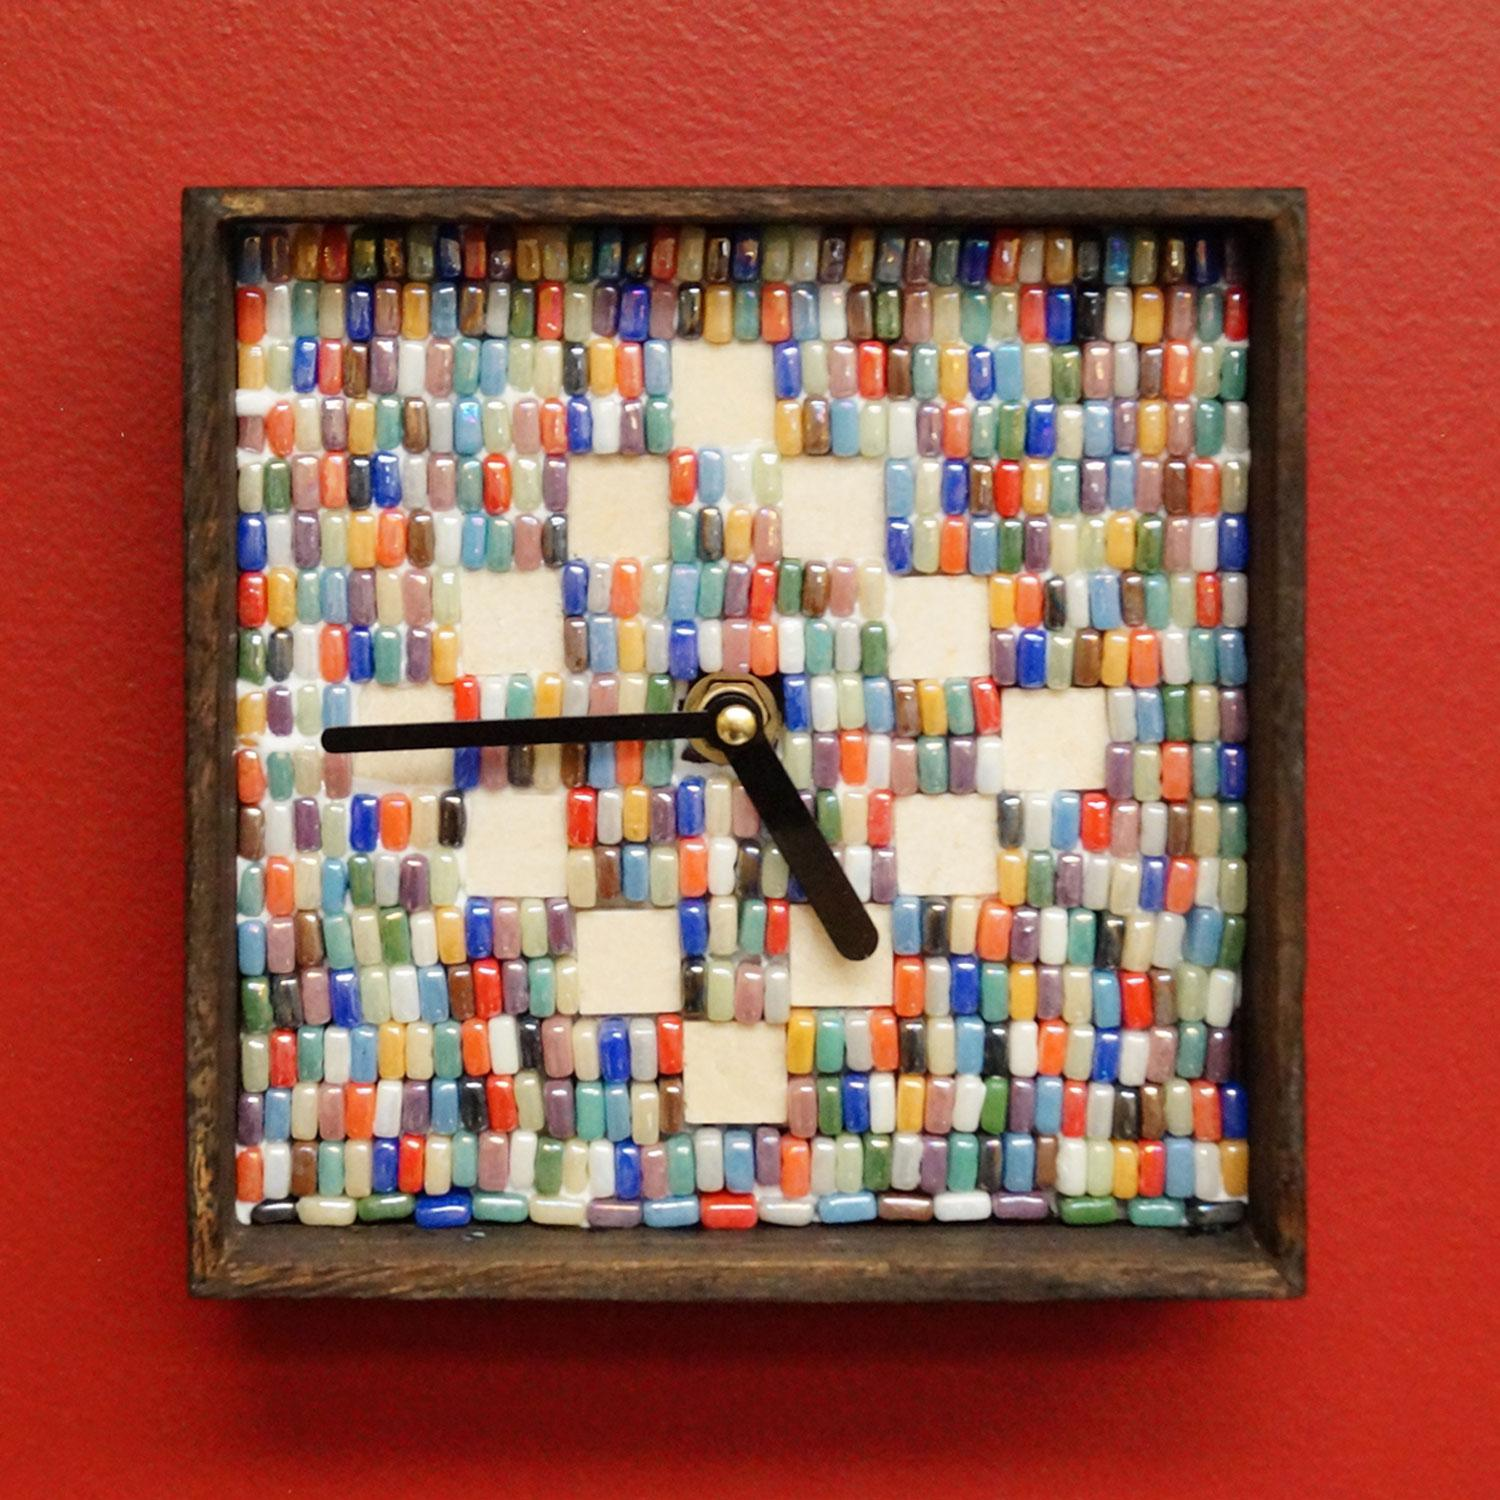 Free Custom Antiquity Mosaics Clock Kit Project Guide